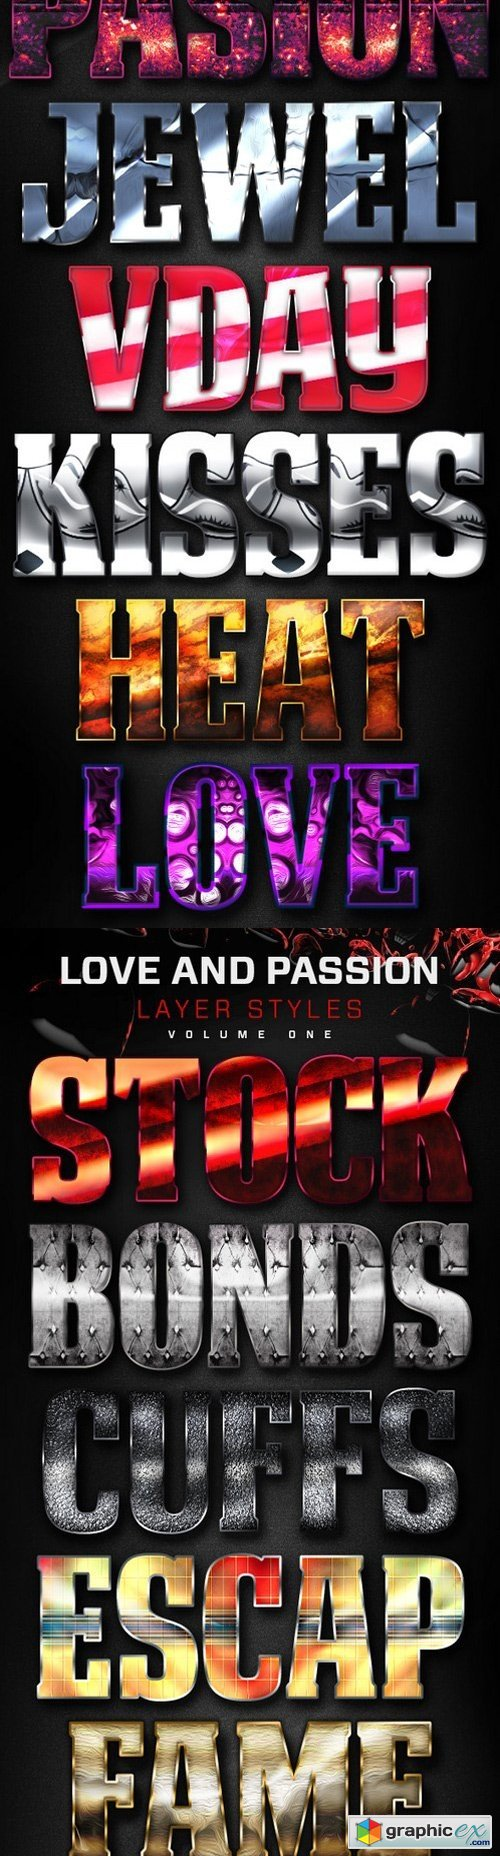 Love And Passion Styles Bundle 1